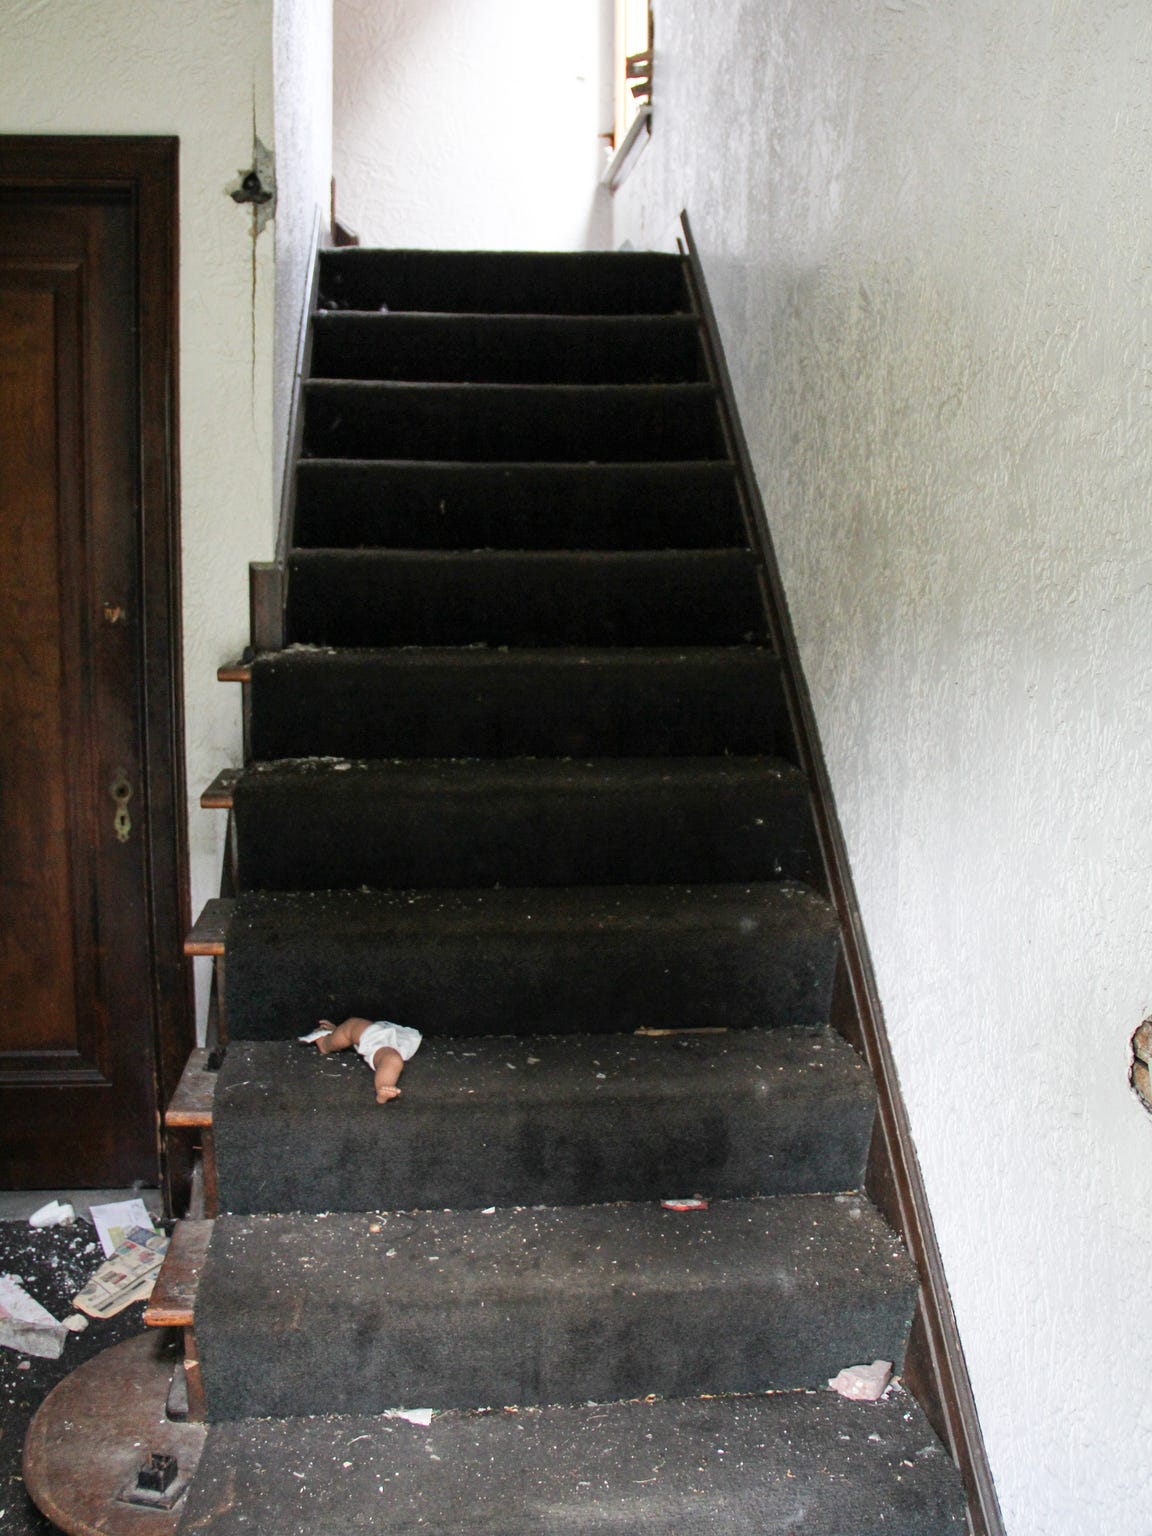 Carpeted stairs now lead to the second-floor apartment at 7124 Tuxedo in Detroit, where Free Press Editorial Page Editor Stephen Henderson's family lived when he was born in 1970. Henderson's mother remembers them as hardwood; she scrubbed them each week because of the pride she had in the home, which went empty and was stripped in 2012. Henderson hopes to remake the house as a writers residence and literary center for the neighborhood.